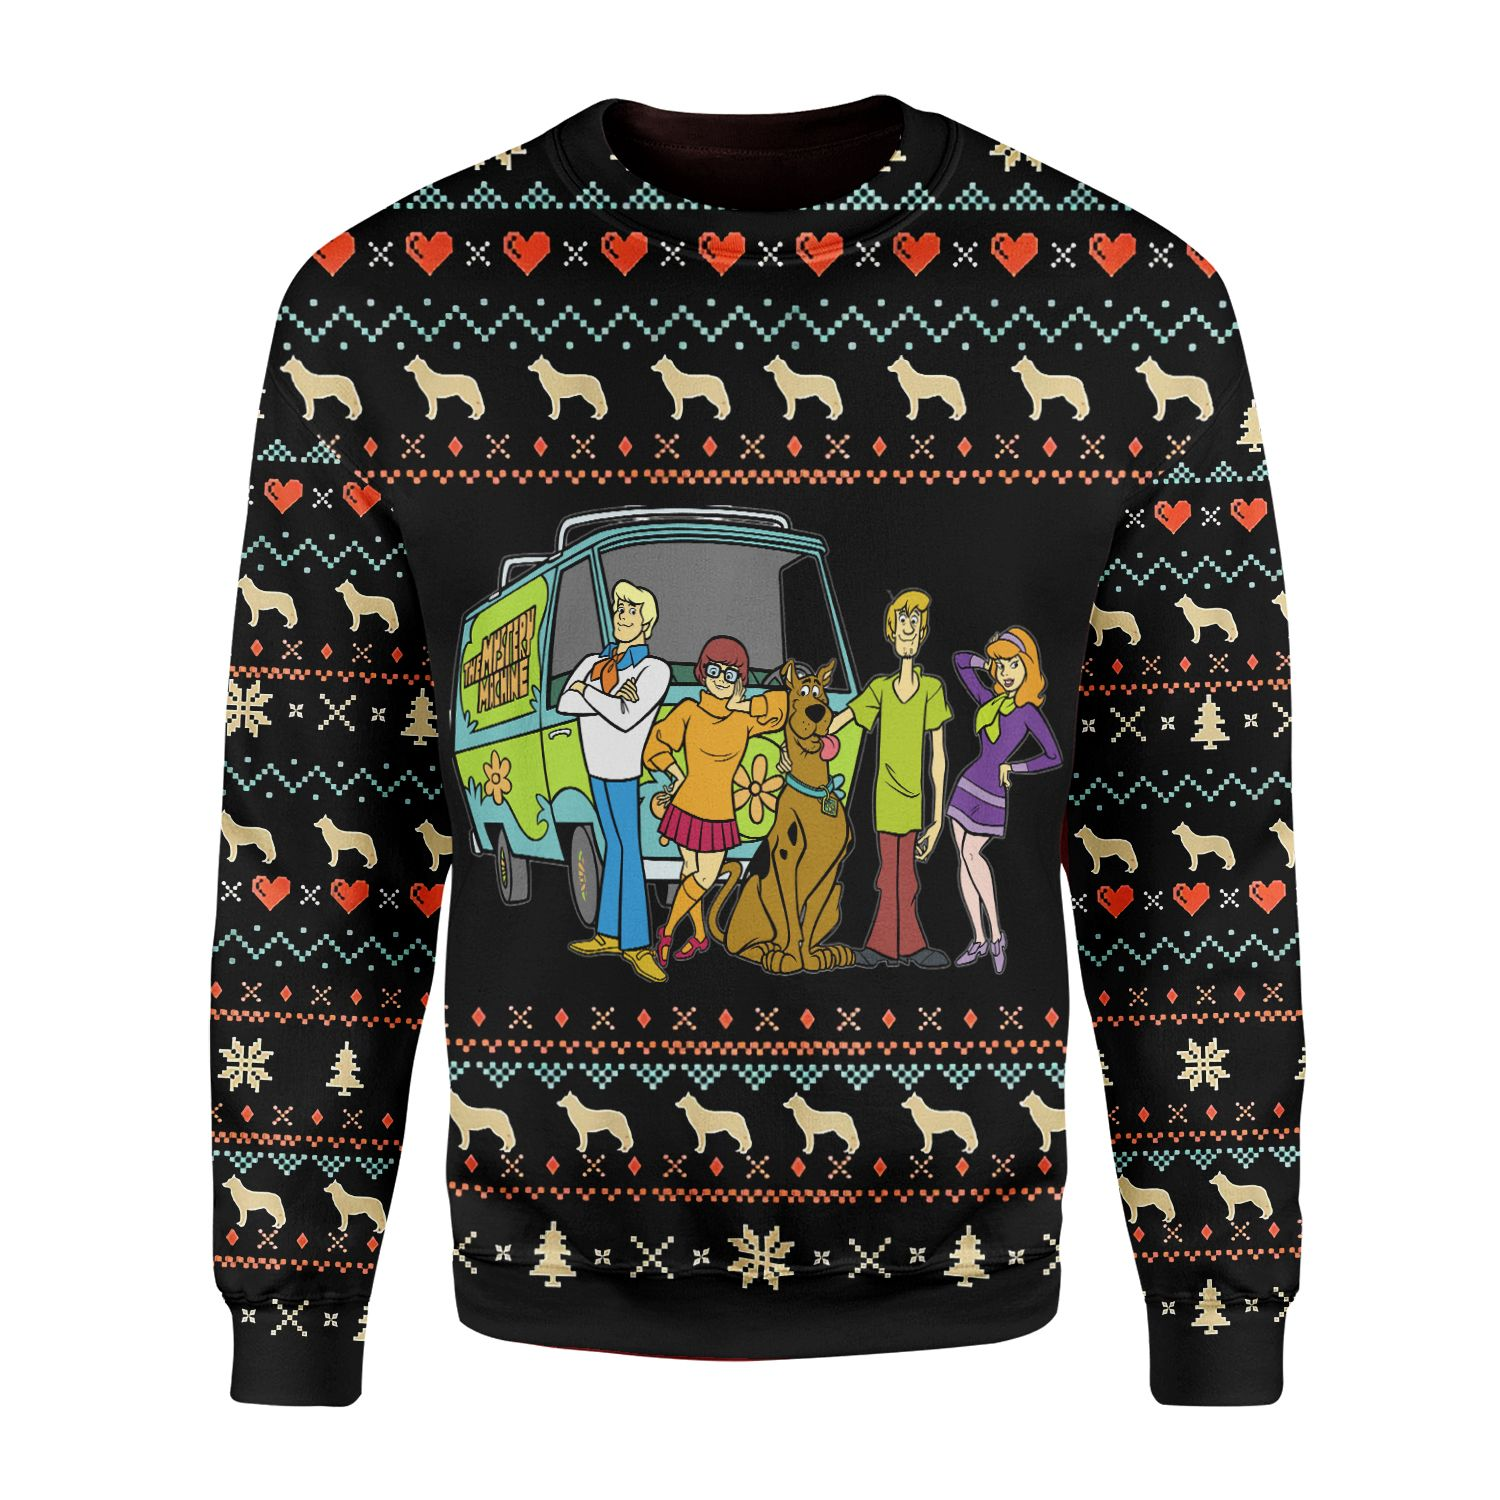 Happy Dog Scooby Doo team 3D Printed Ugly Sweater